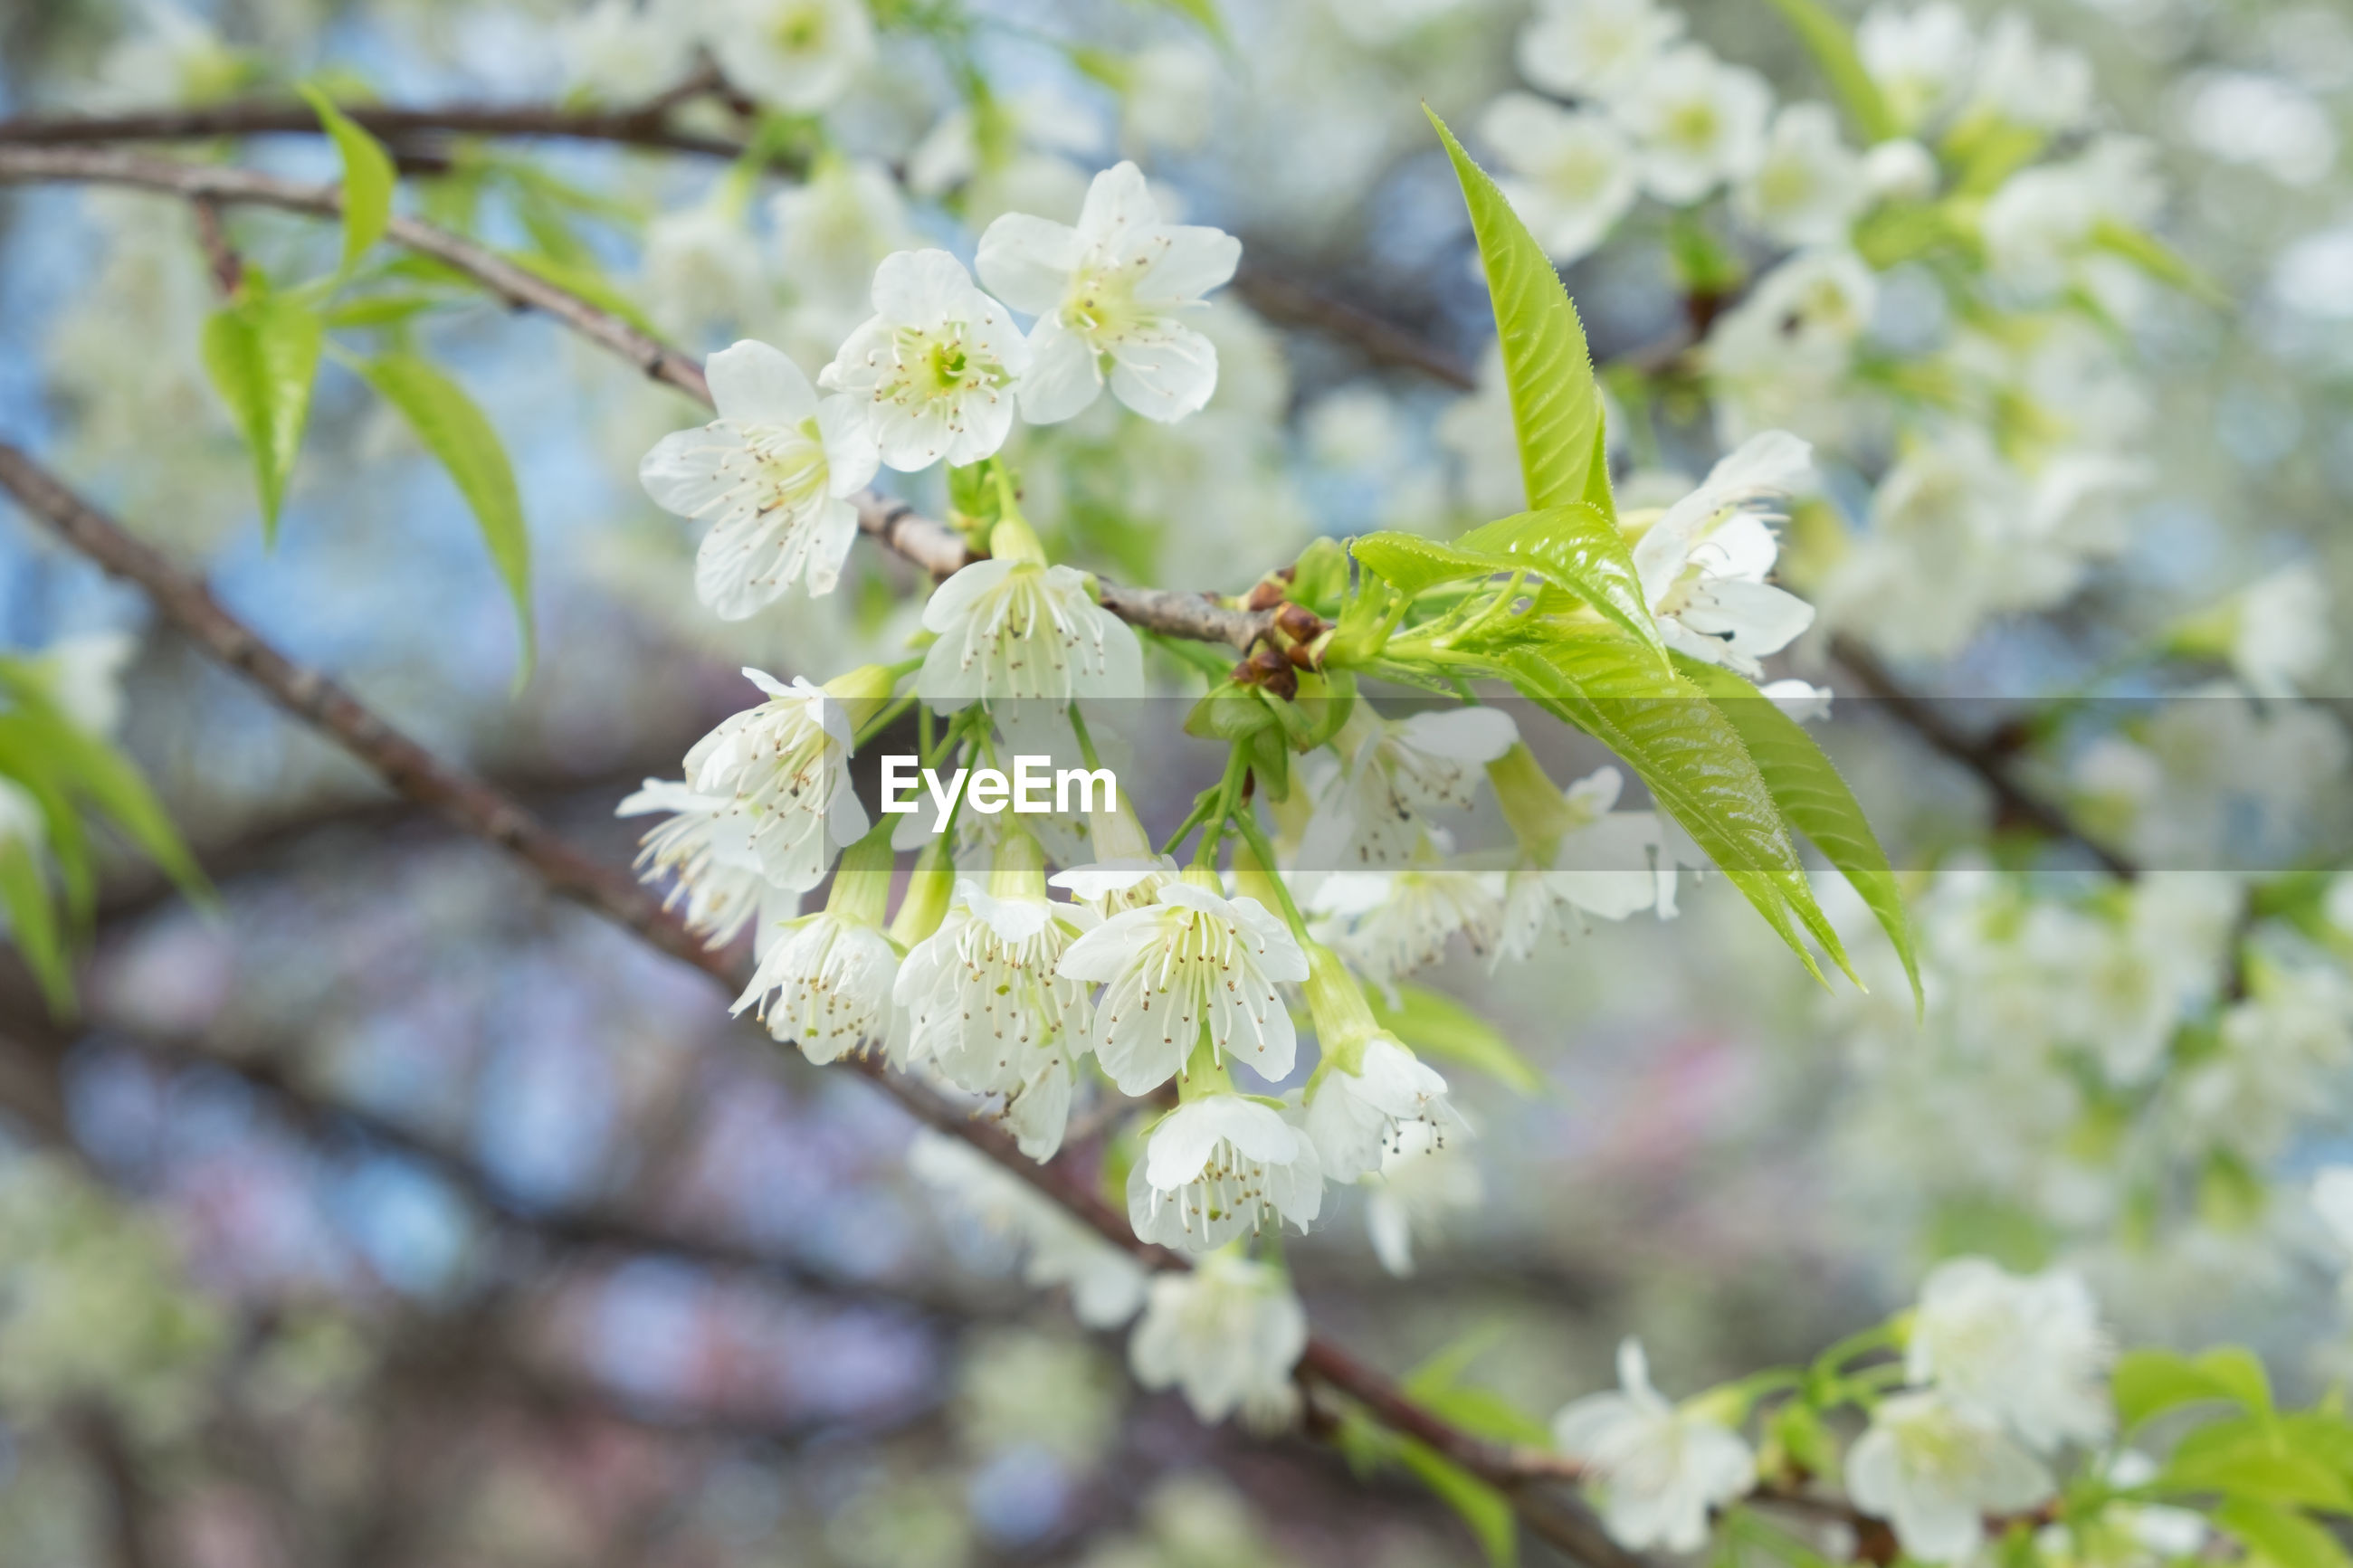 CLOSE-UP OF WHITE BLOSSOM ON BRANCH OF TREE